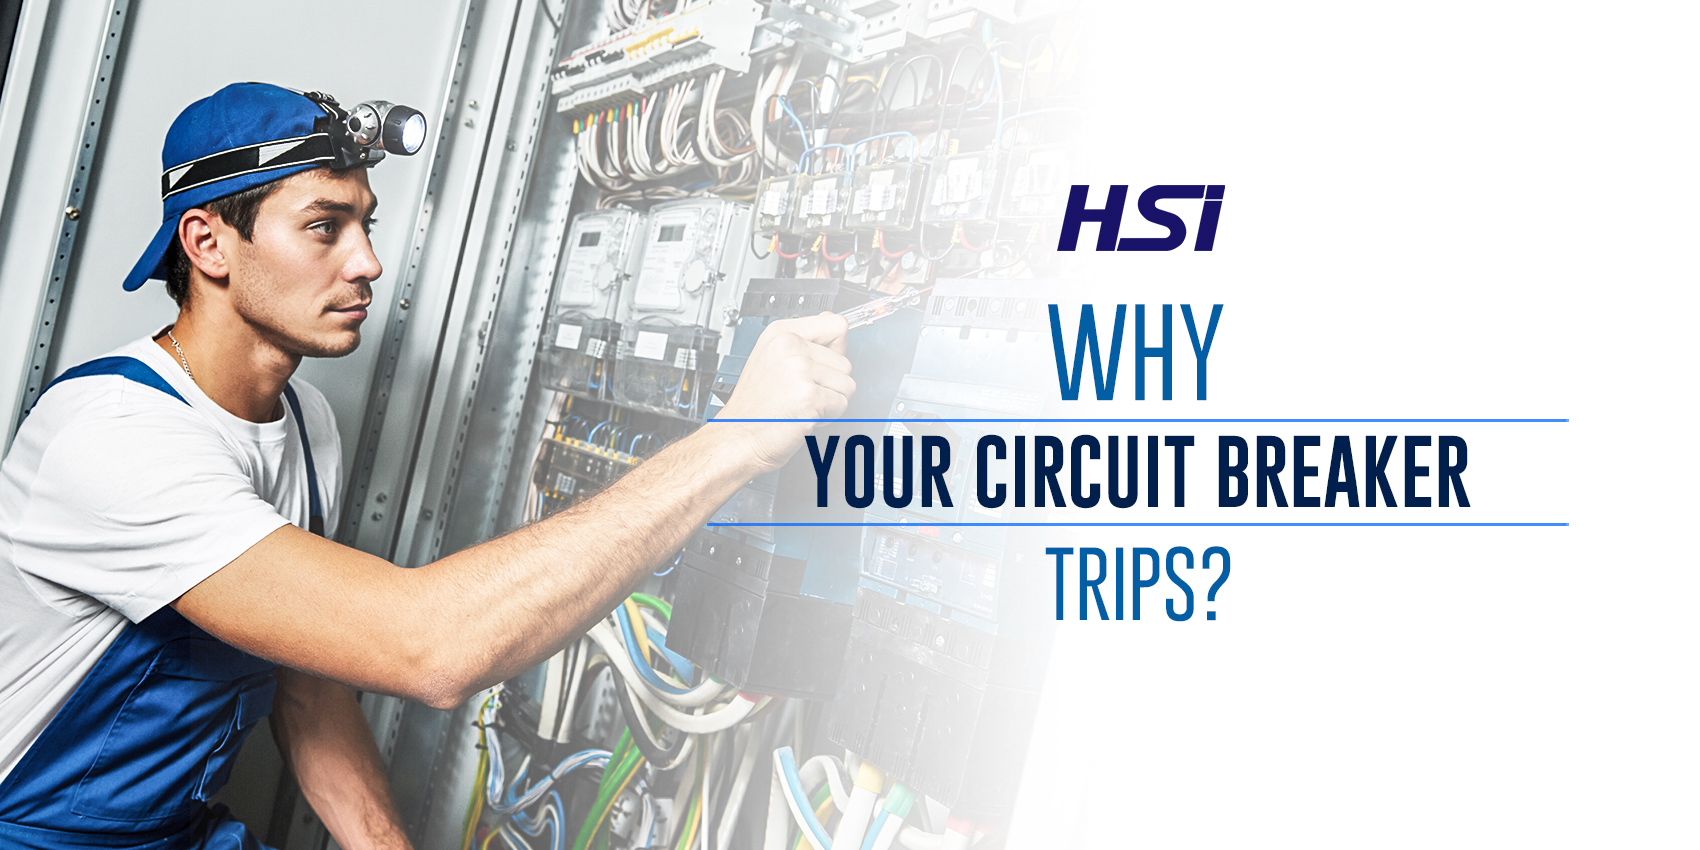 Why Your Circuit Breaker Trips?